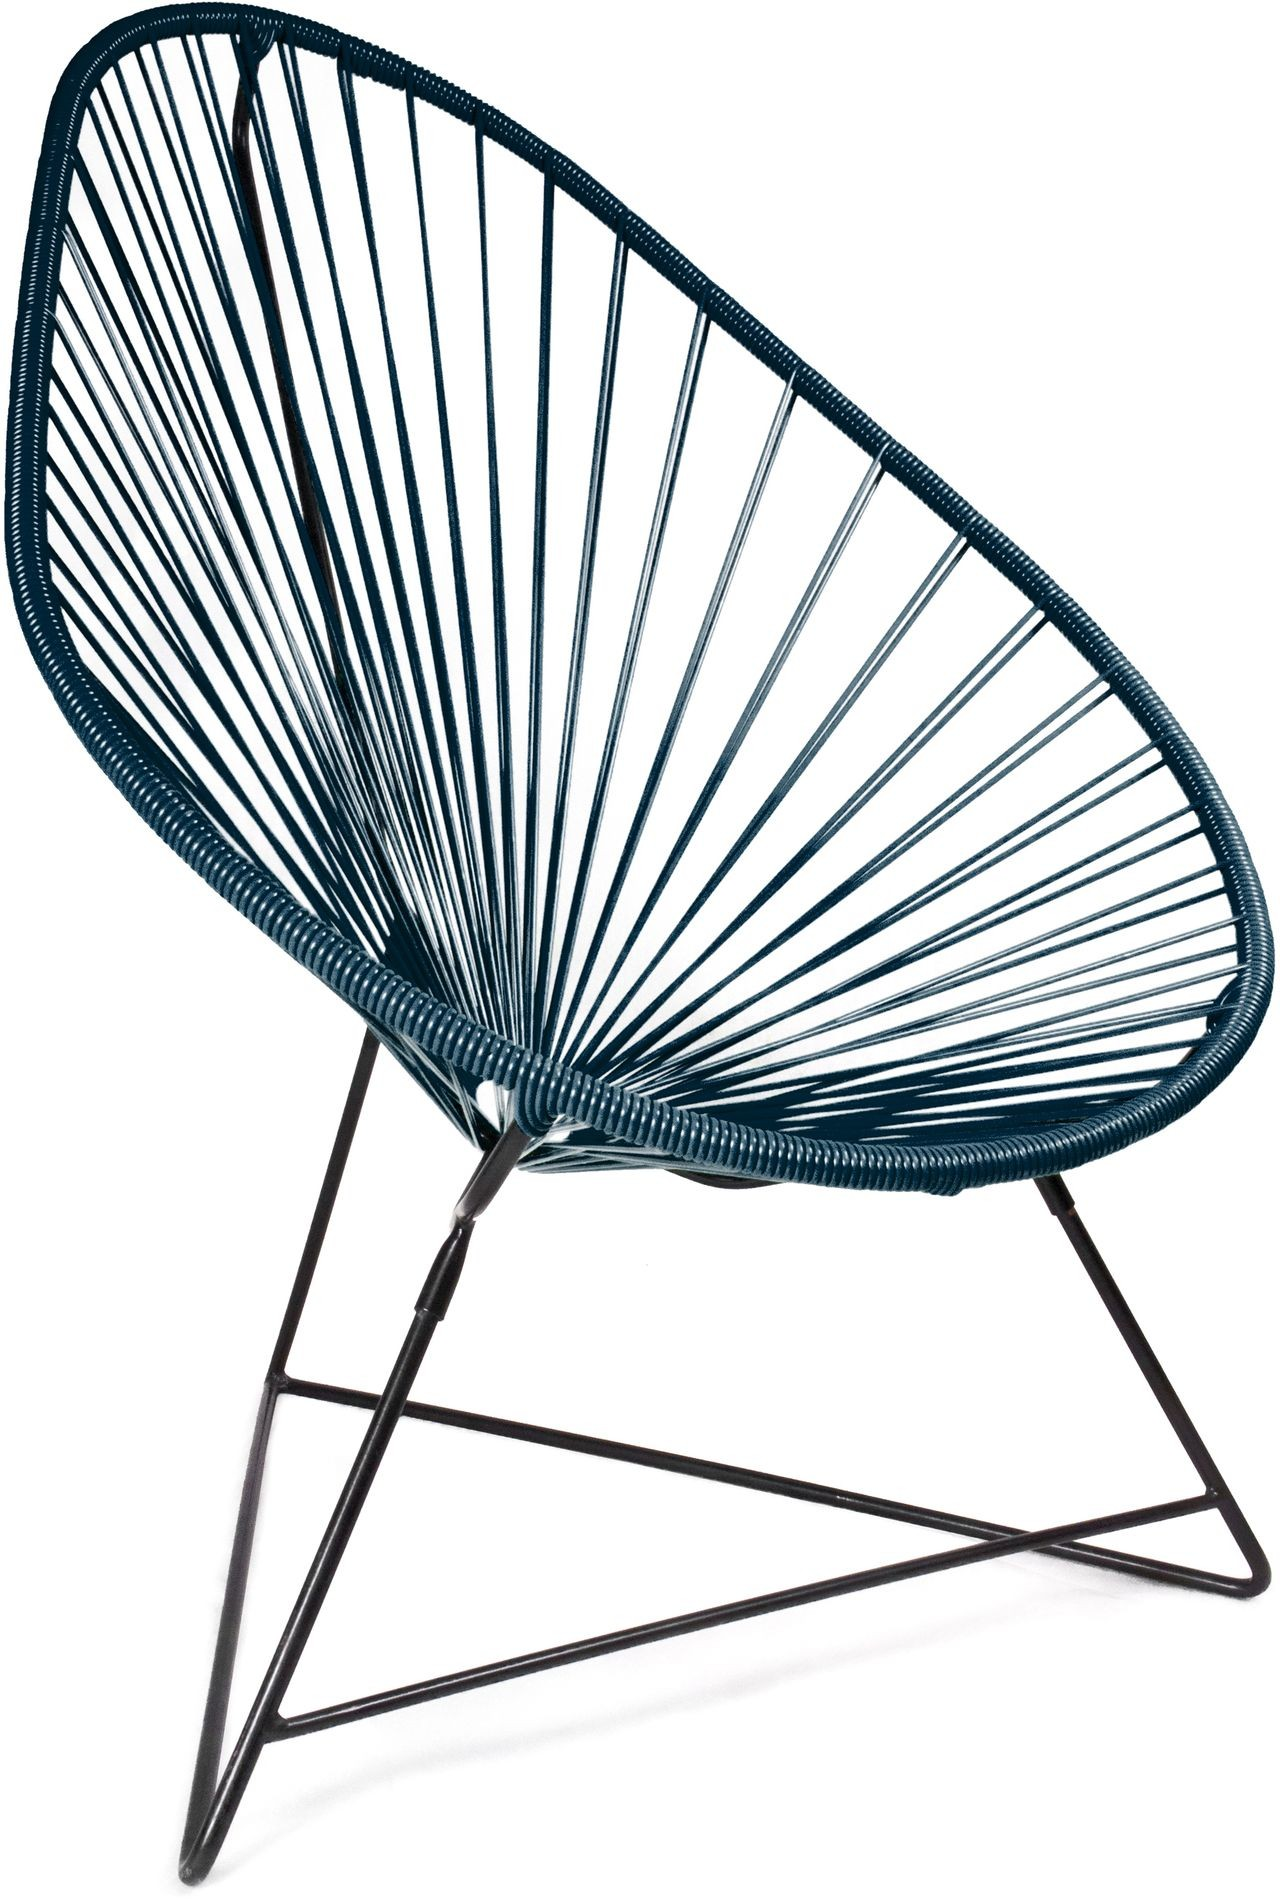 Kleine Sessel Design acapulco chair boqa design sessel kleine fabriek